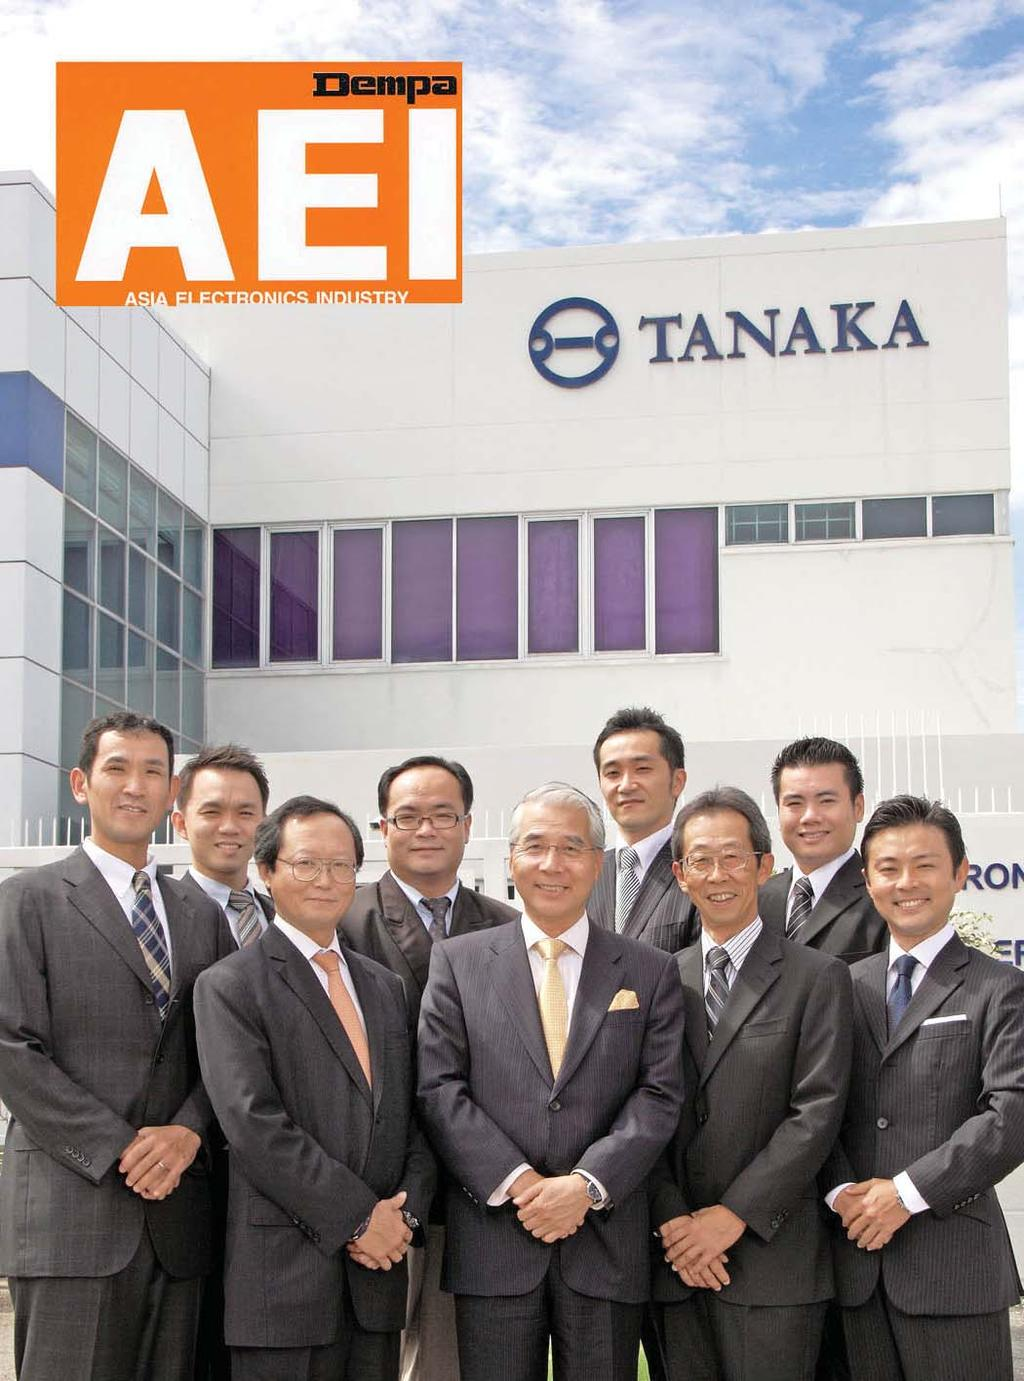 ASIA ELECTRONICS INDUSTRY